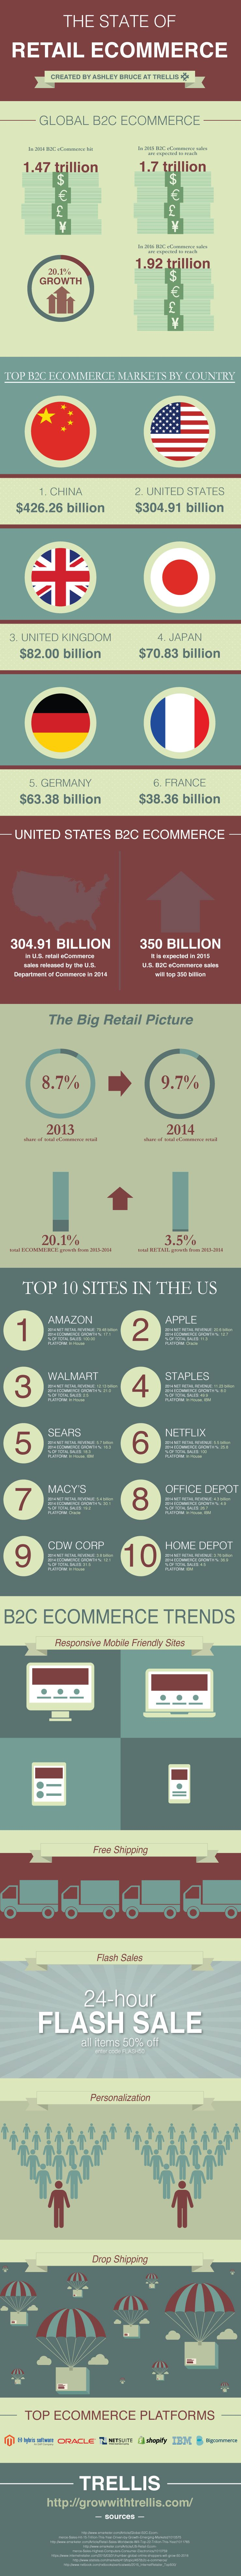 The State of Retail eCommerce